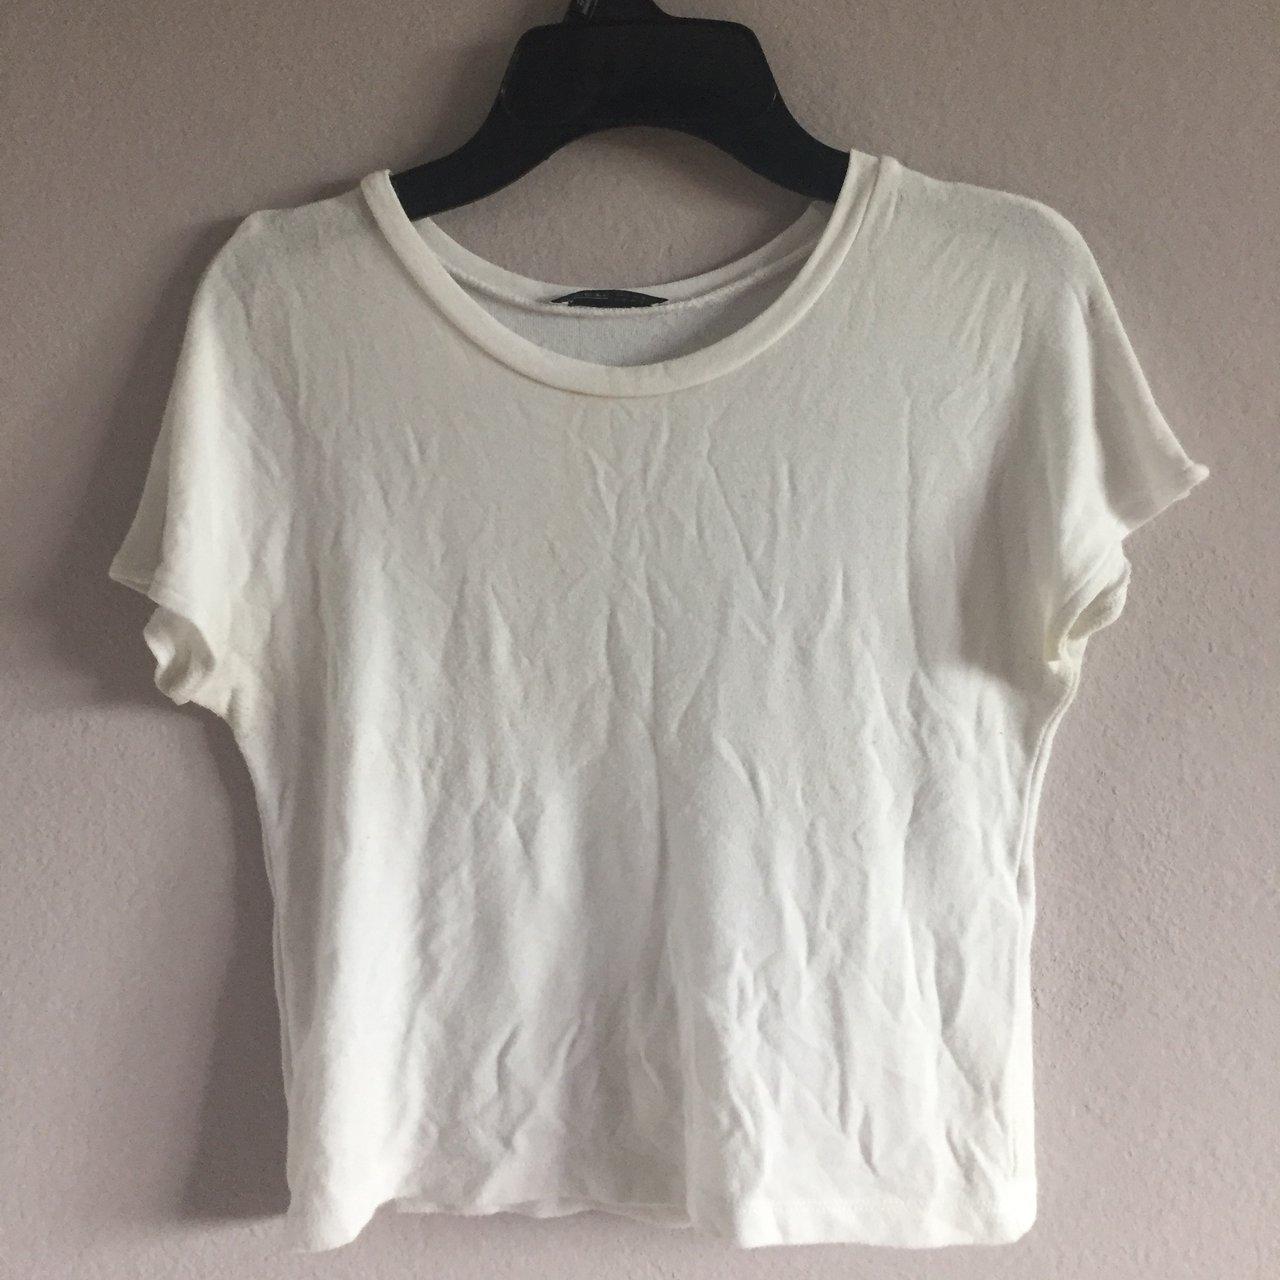 2700be3eaba44 Zara plain white fitted crop top I wore it maybe twice so - Depop